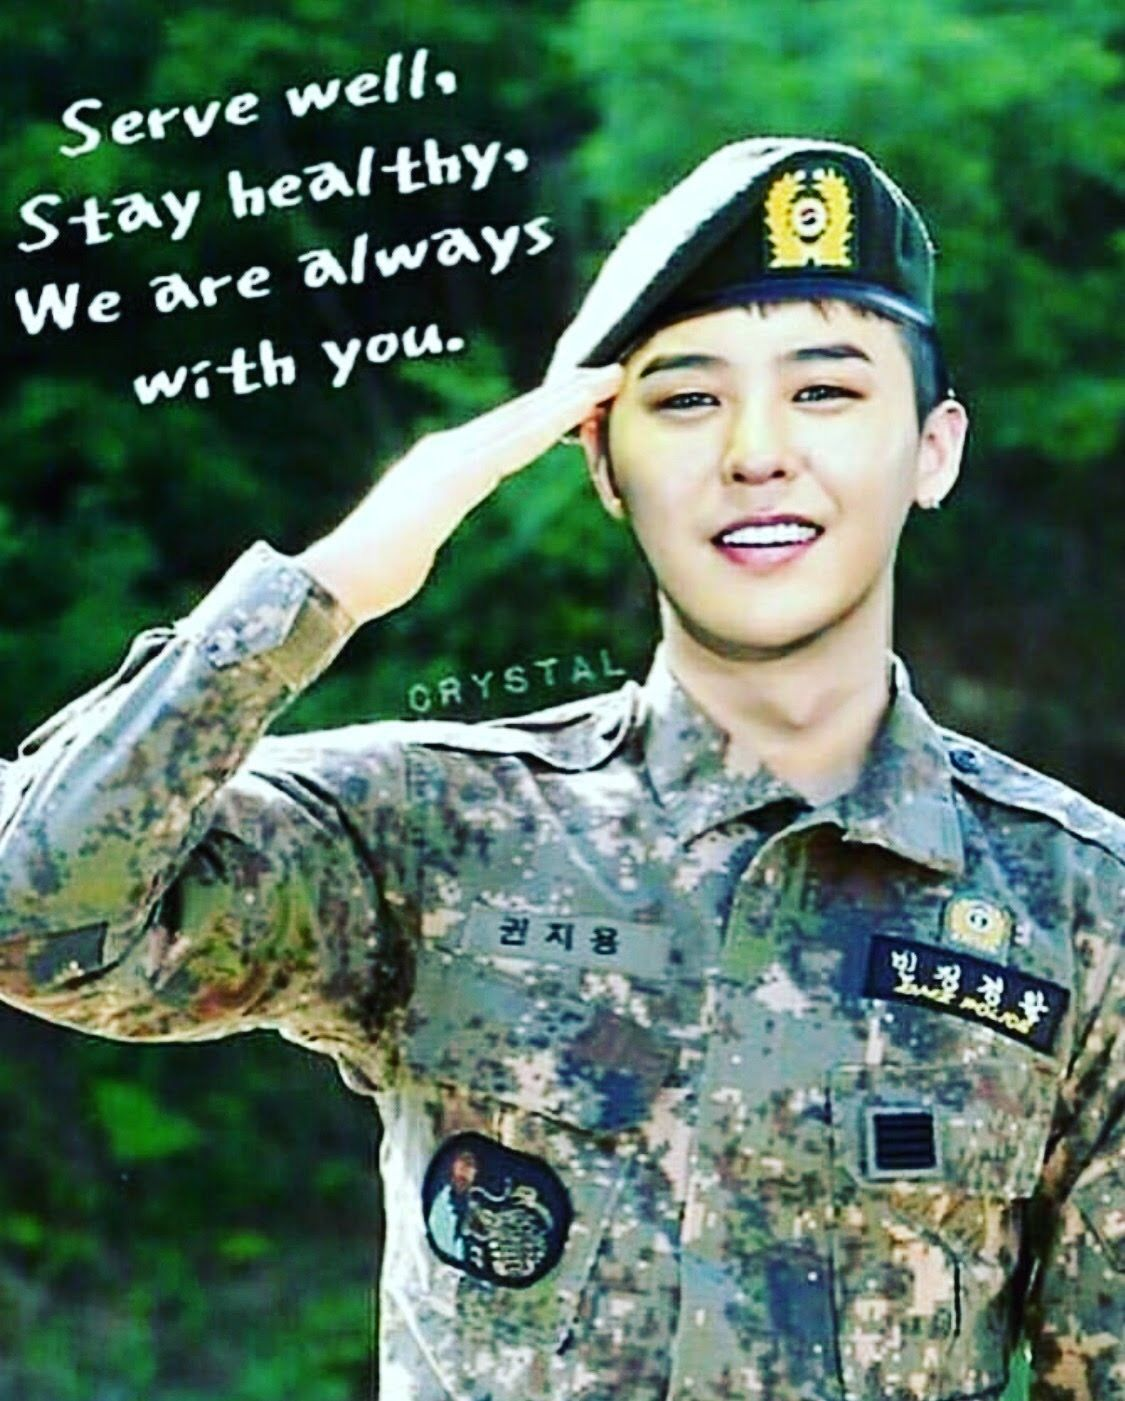 Kwon Jiyong Oppa Serve Well Take Care Stay Healthy We Are Always With You Gd Gdragon Kwonjiyong Bigbang G Dragon Bigbang G Dragon Bigbang